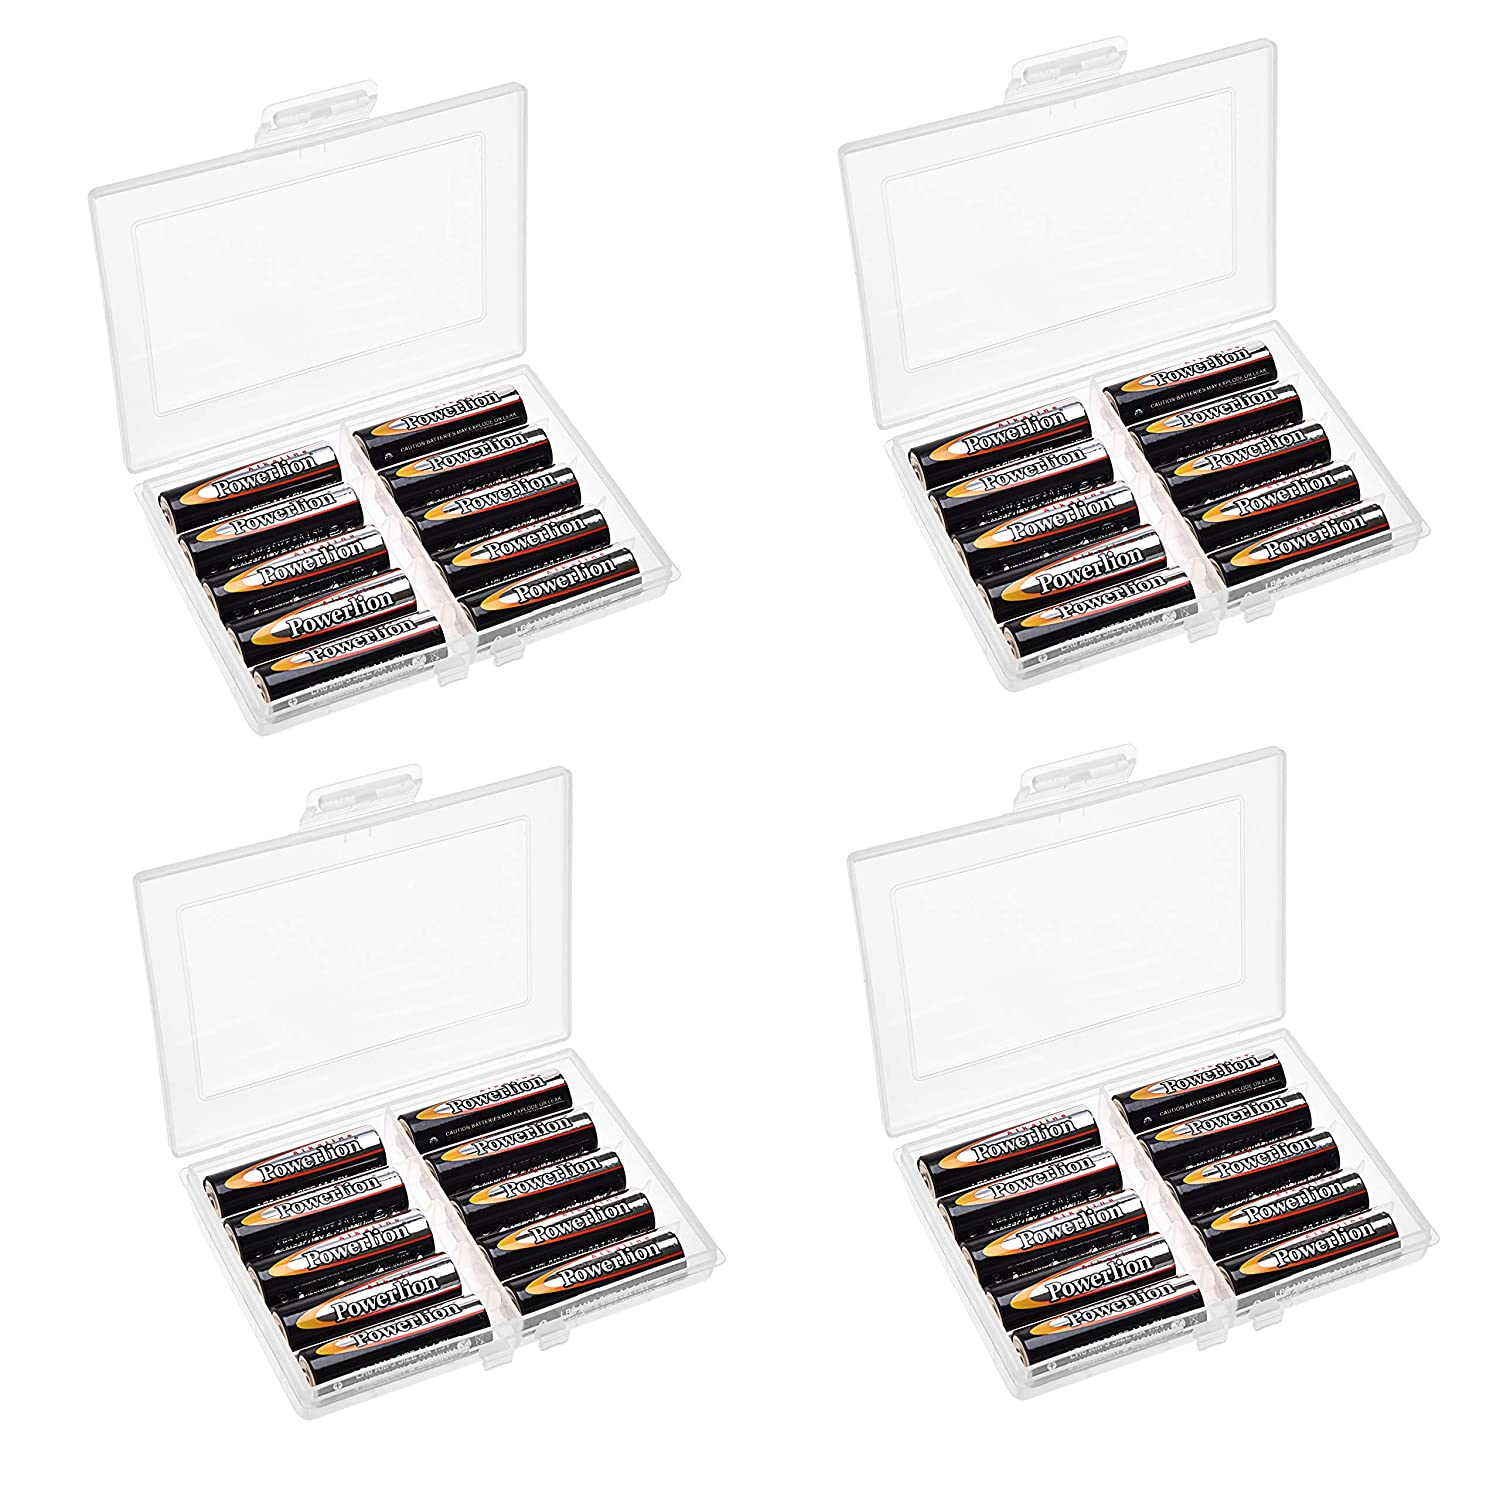 C 9 Volt Sizes COOMATEC Battery Storage Organizer Box Great Storage for Kitchens Hinged Lid for AA Holds 47 Batteries Various Sizes D AAA 5 Compartments Home Offices and Utility Rooms